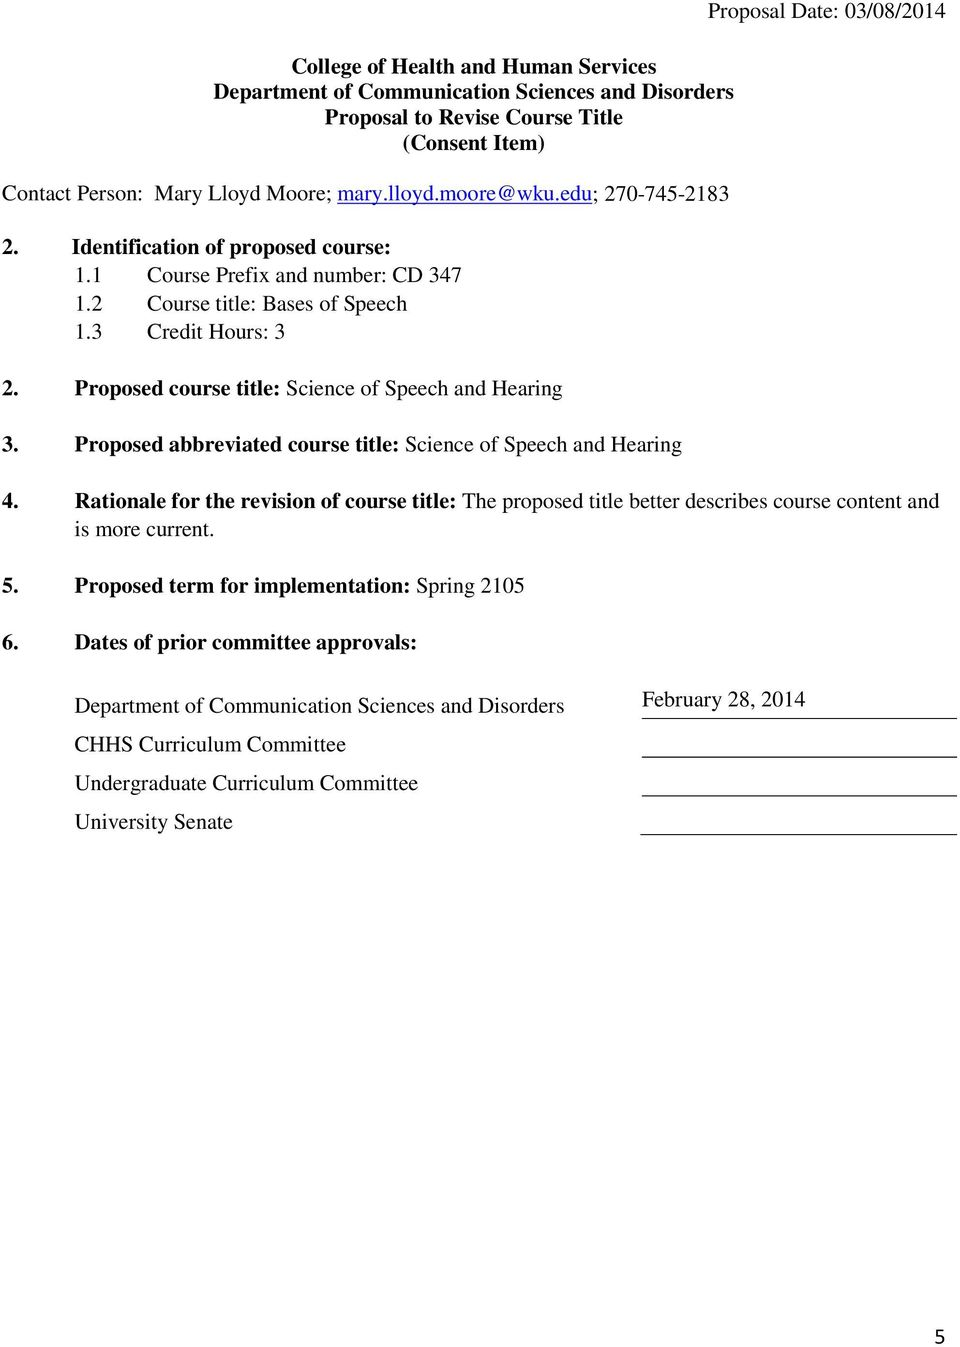 Proposed abbreviated course title: Science of Speech and Hearing Proposal Date: 03/08/2014 4.